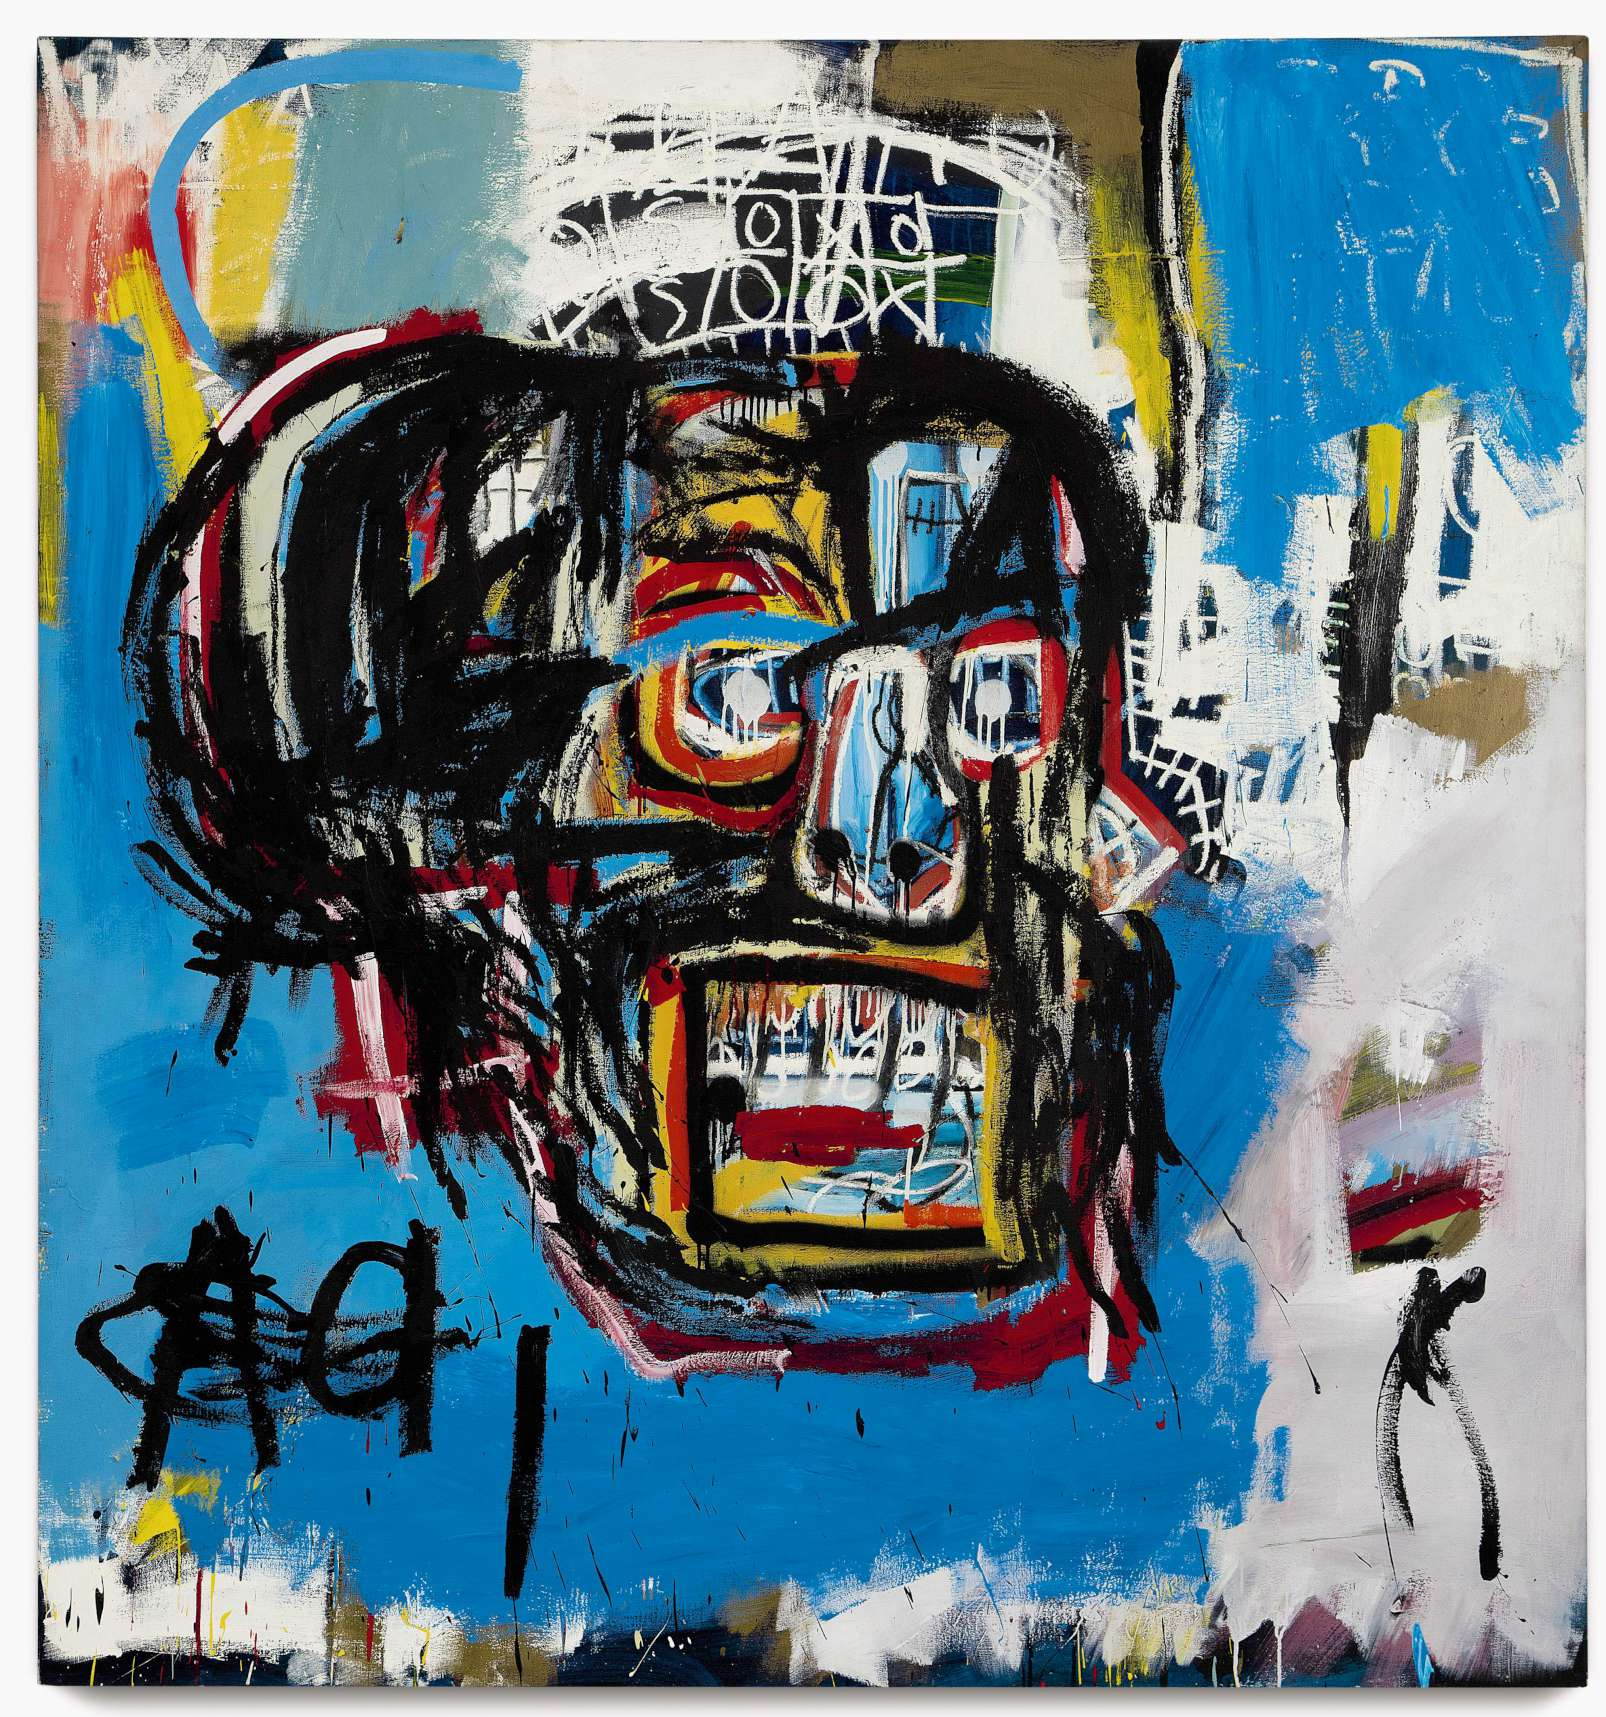 Jean-Michel_Basquiat - Untitled